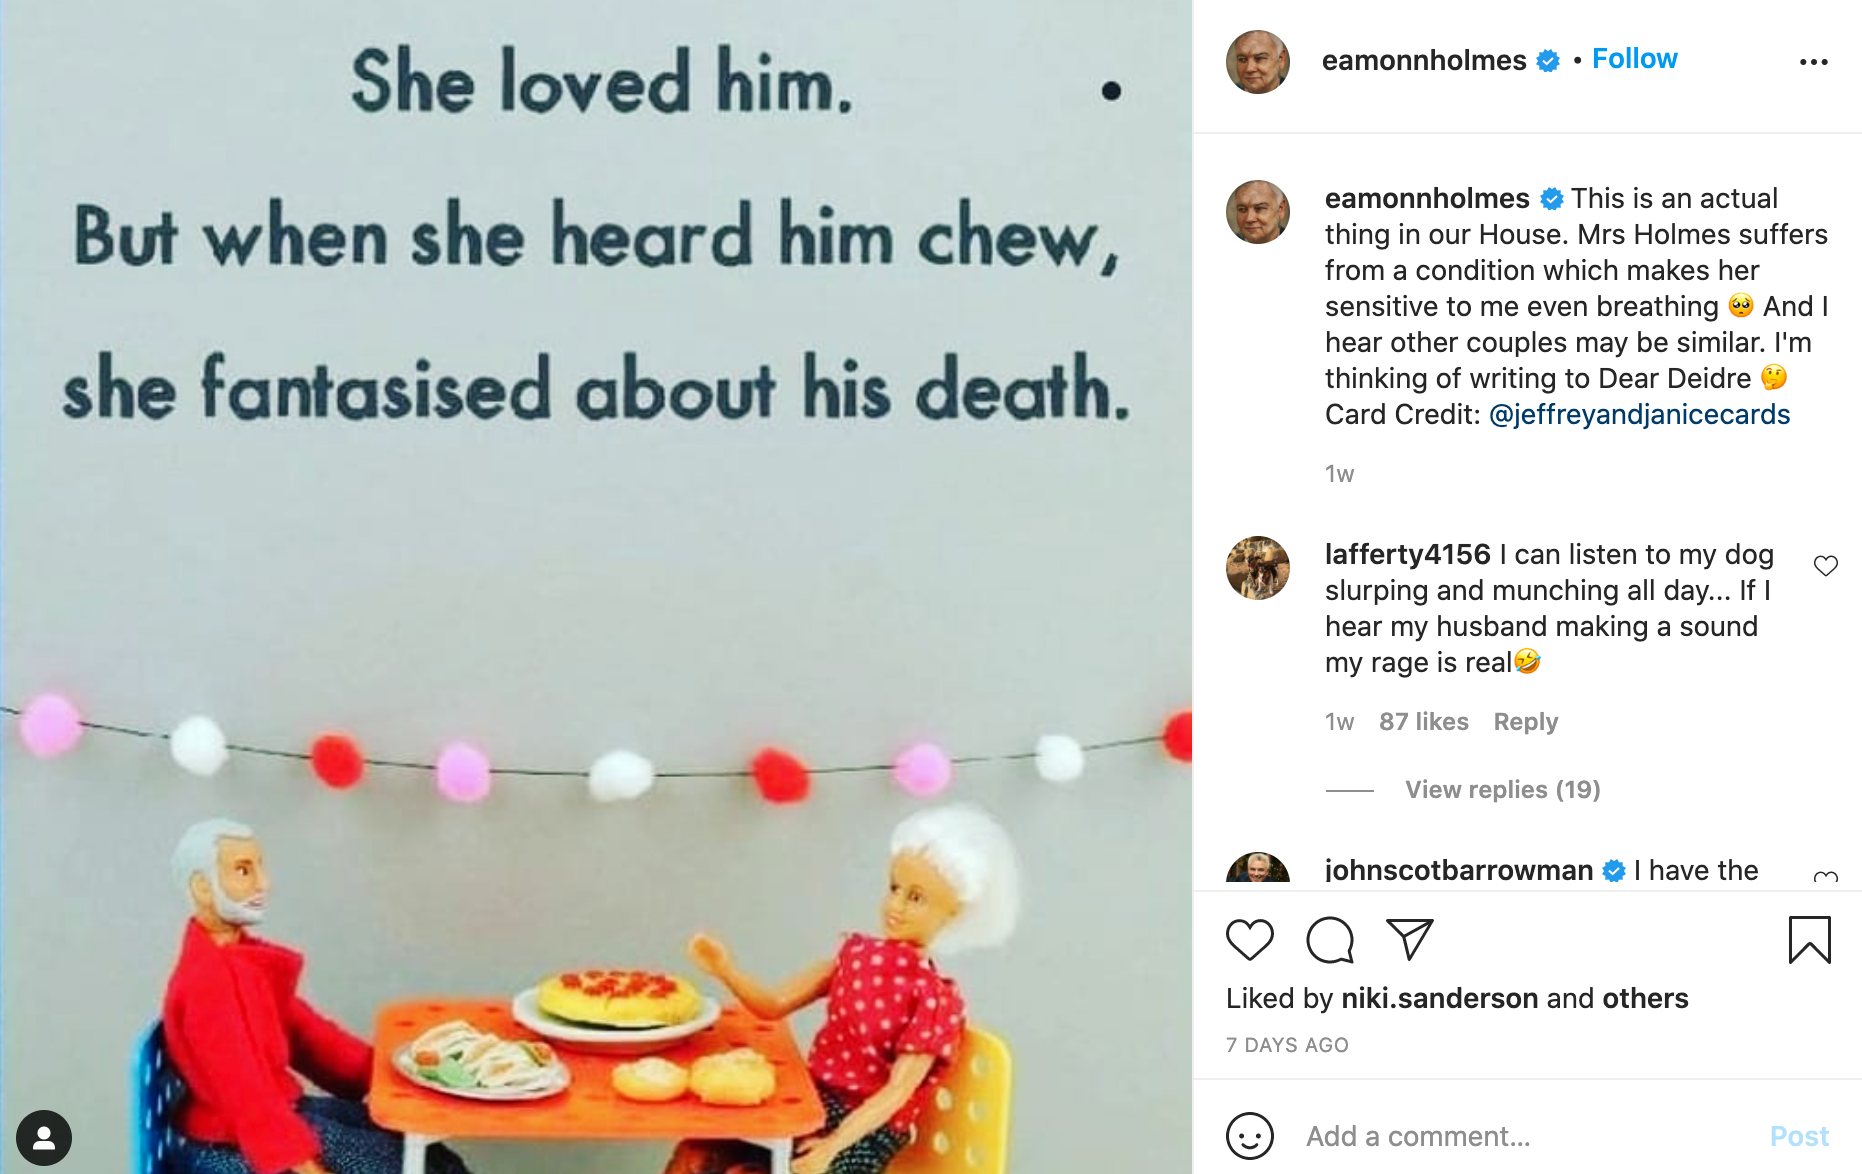 Above: The Instagram post Eamonn Holmes made about the card and the condition.